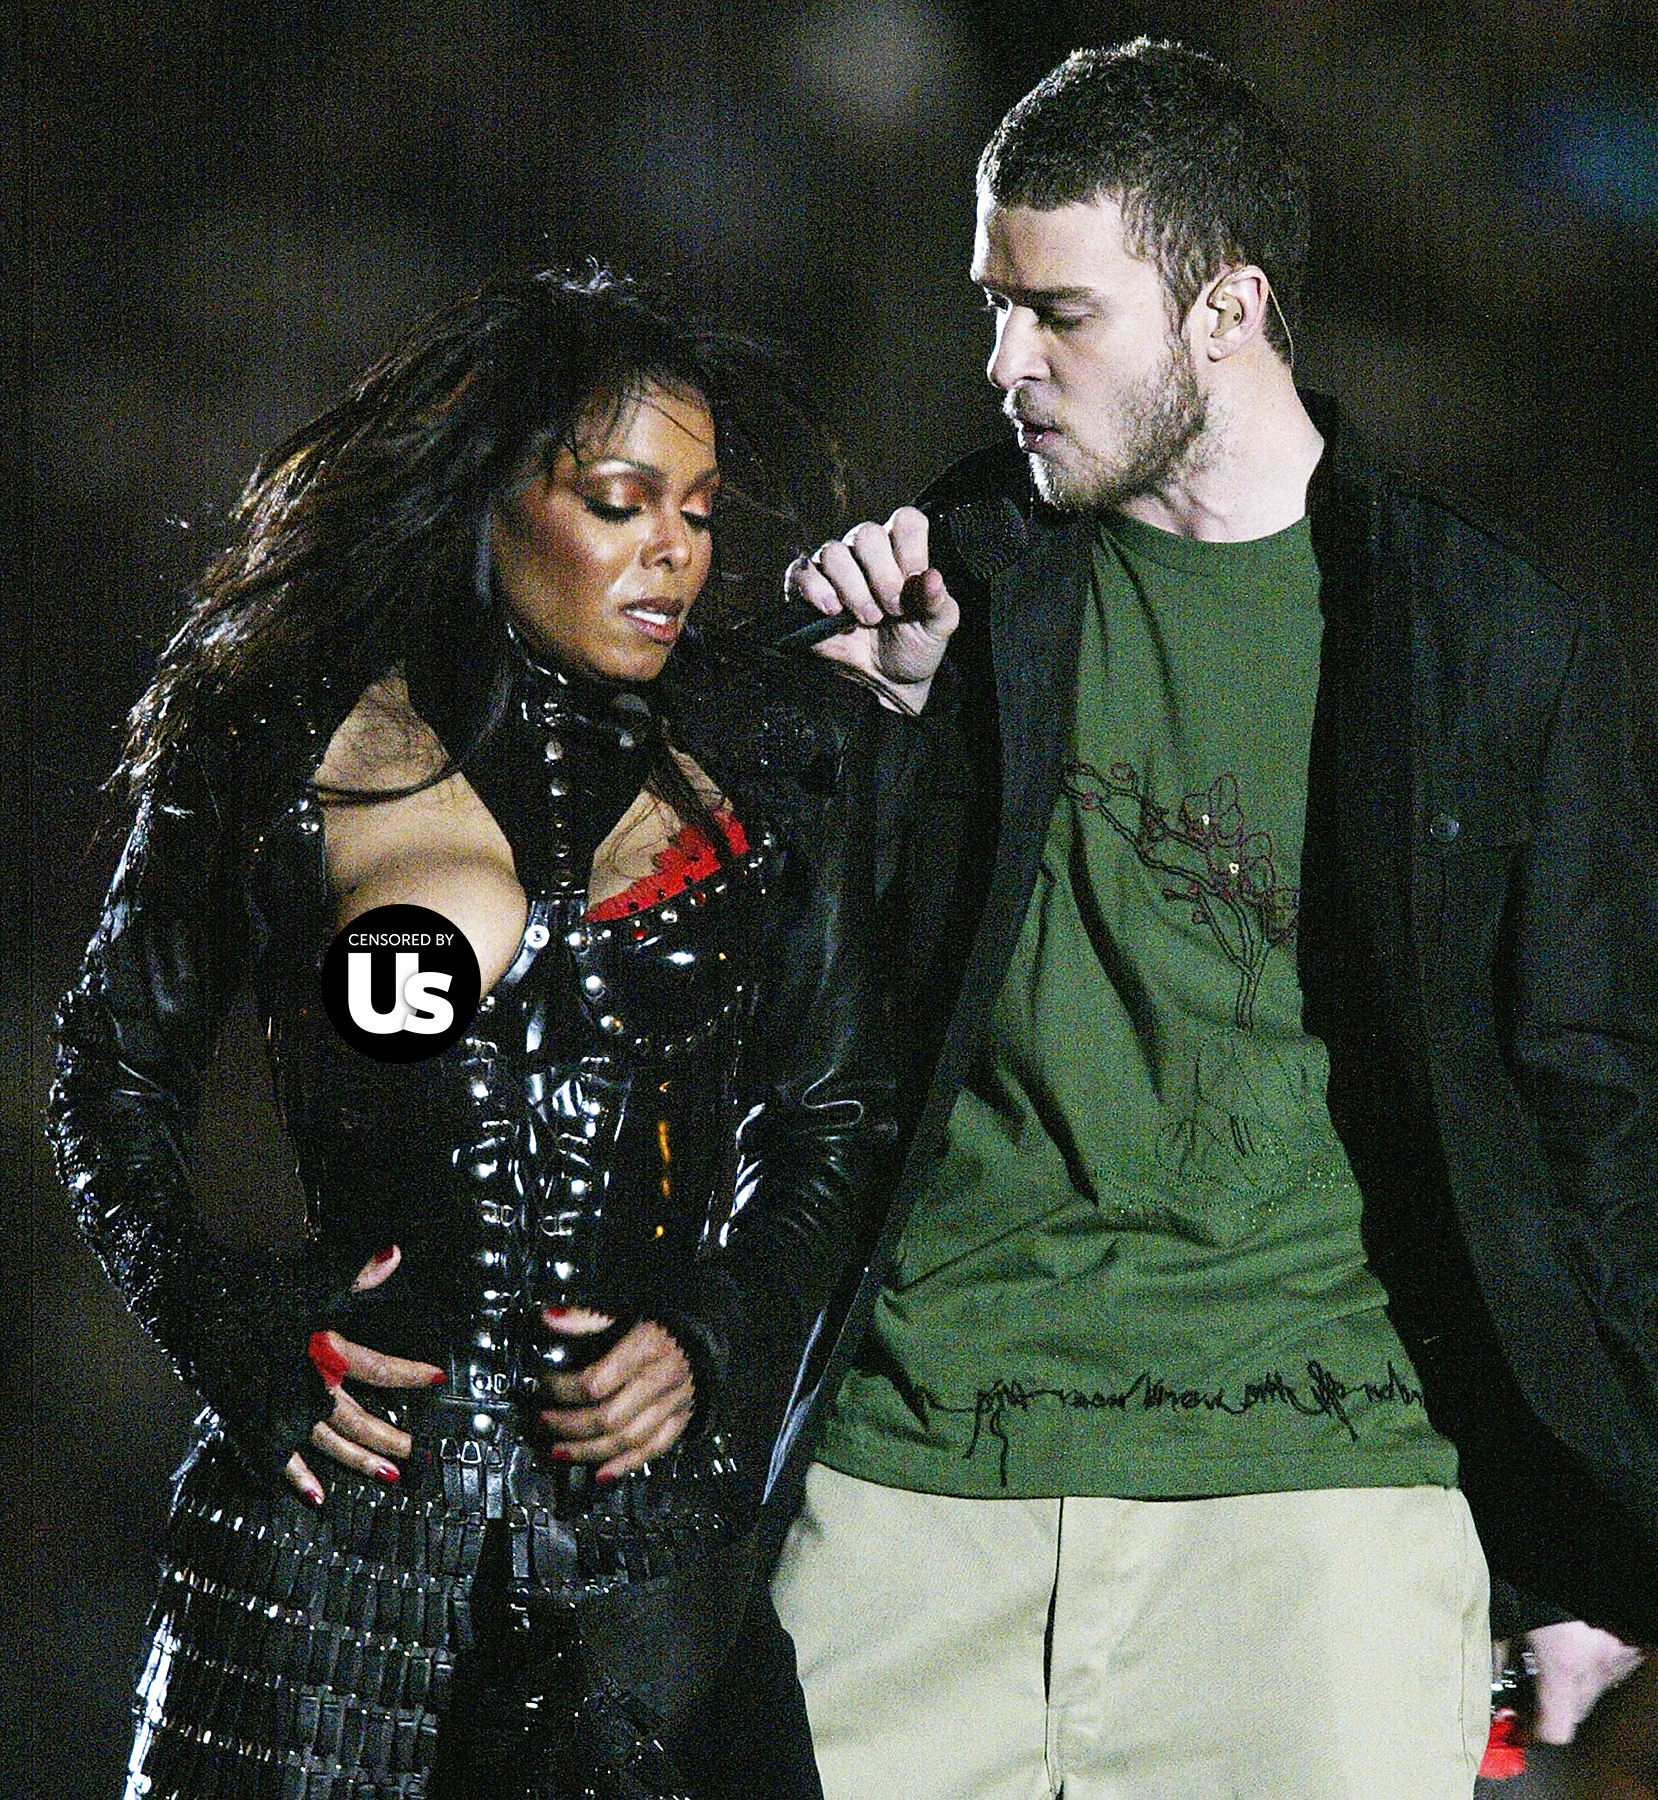 Janet jackson justin timberlake superbowl incident video